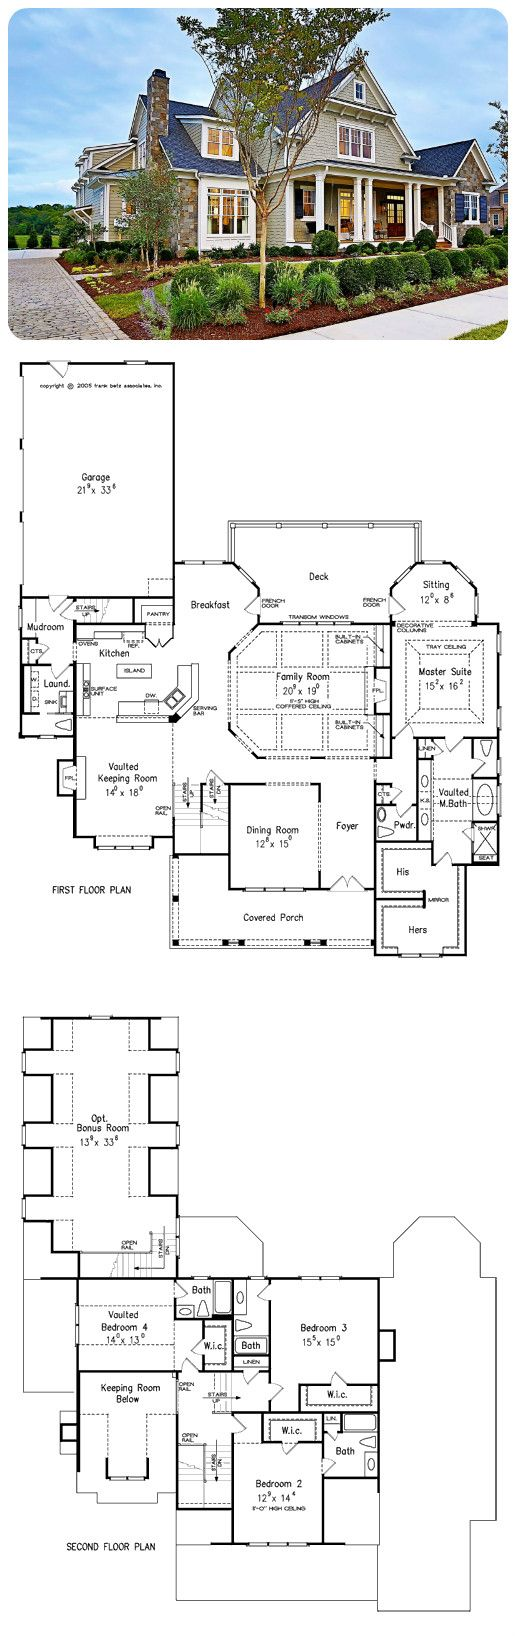 northfield manor a frankbetz plan spacious luxury living is the hallmark of